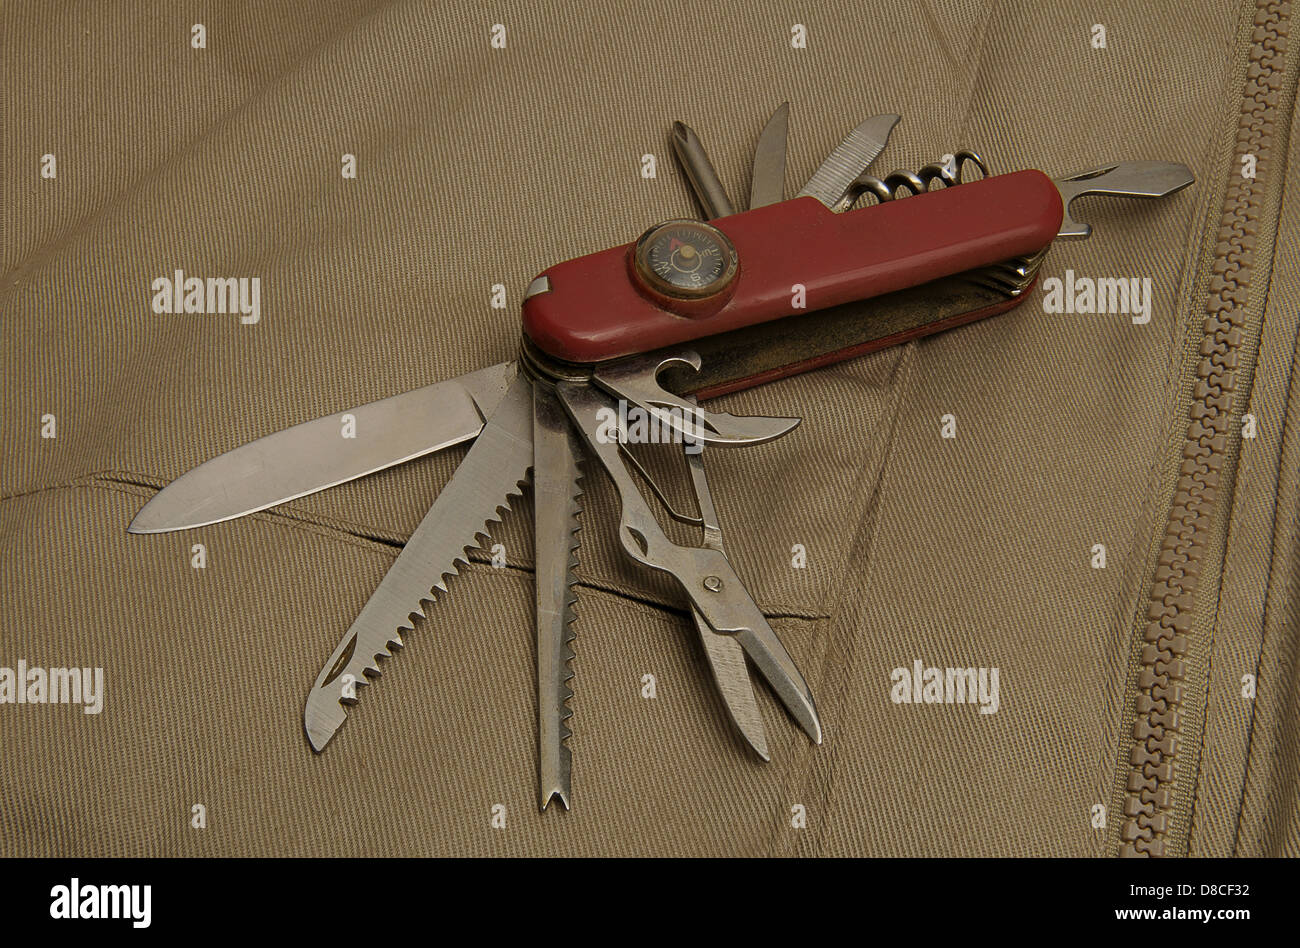 Chinese replica Swiss Army knife - Stock Image